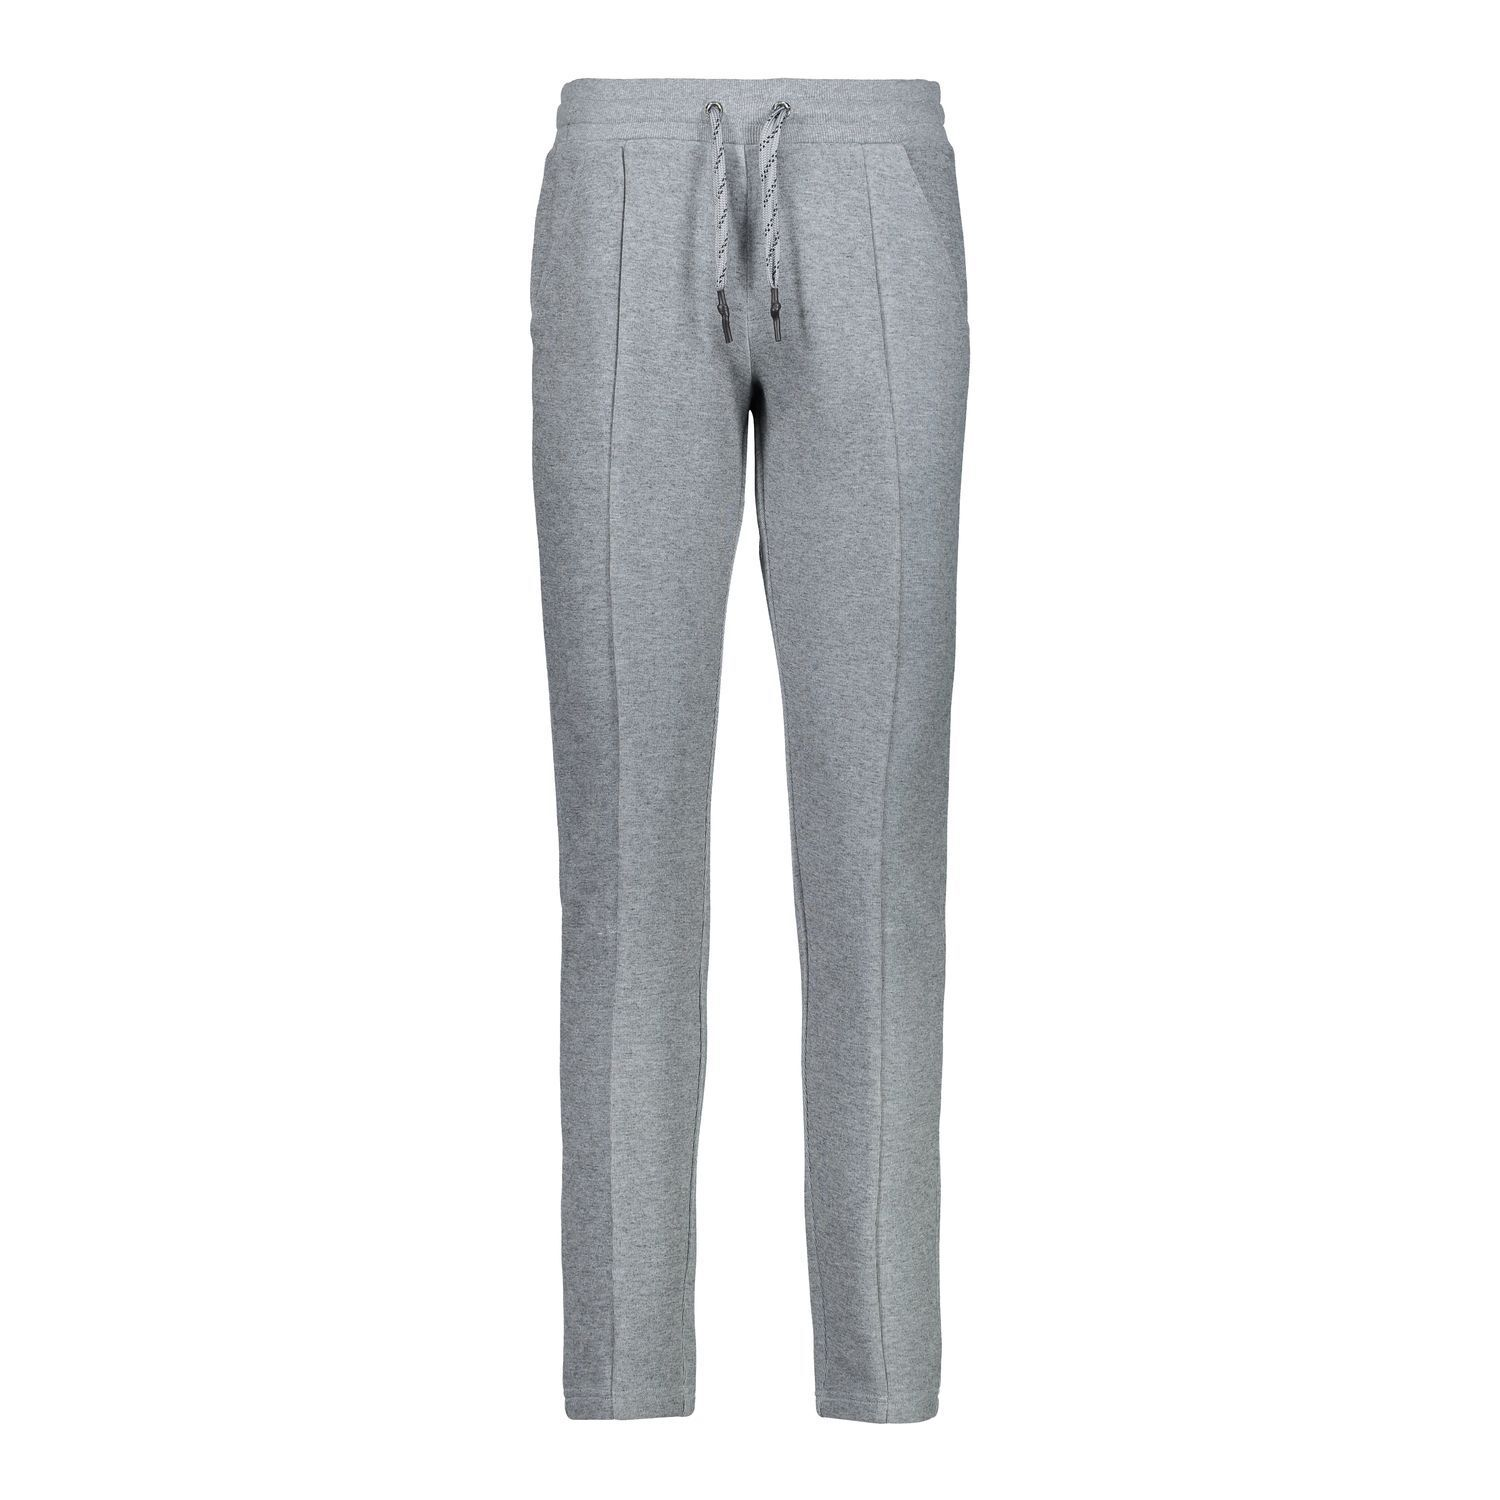 CMP Fleece Trousers Woman  Long Pant Grey Breathable Warming Mottled  welcome to choose